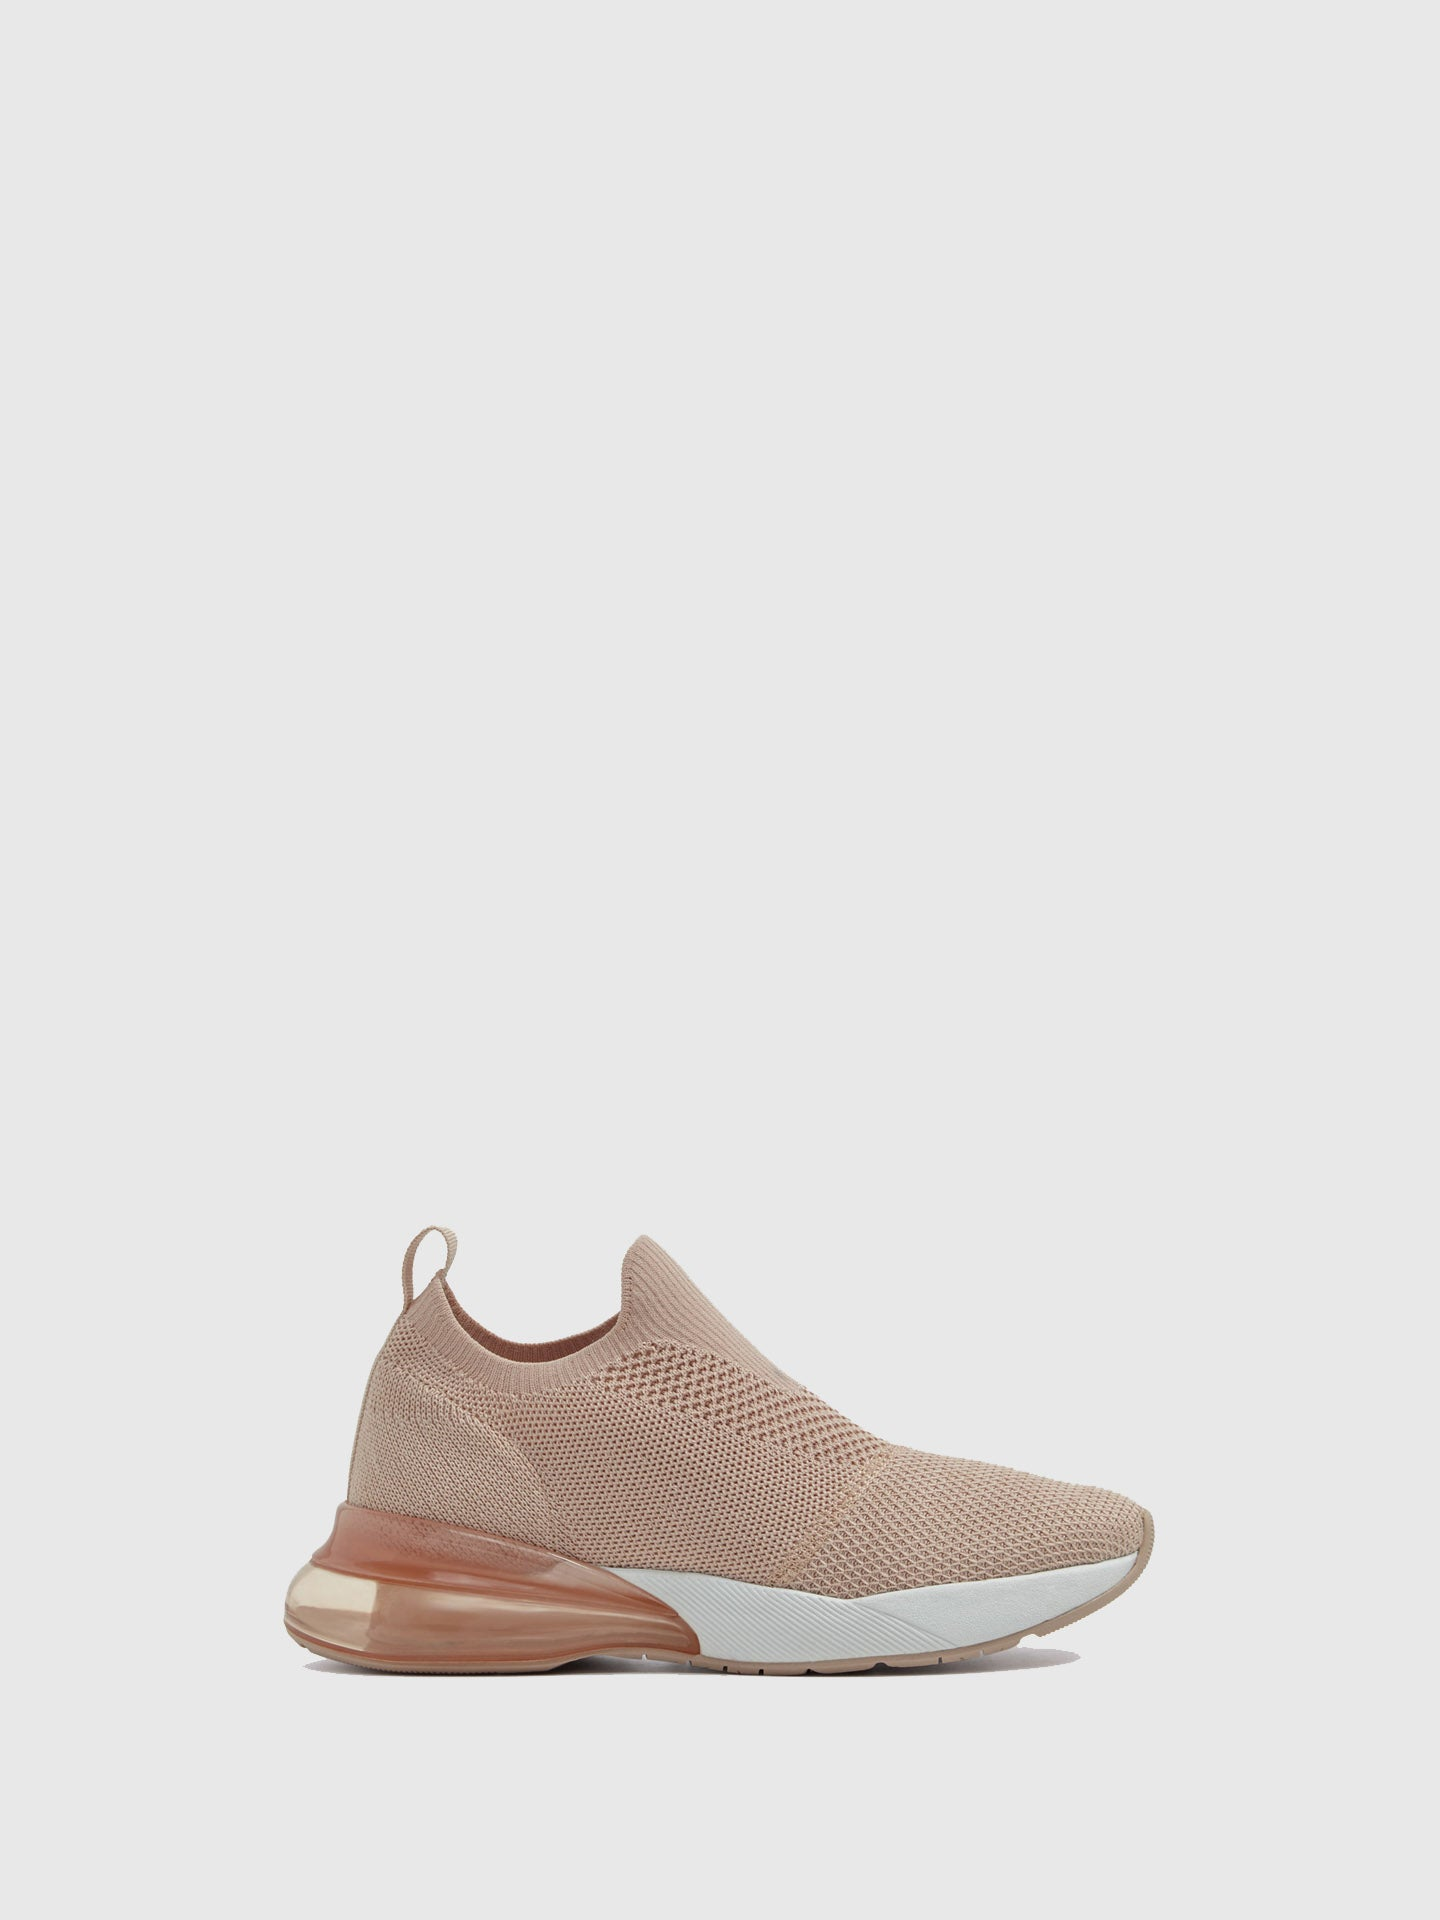 Aldo LightPink Slip-on Trainers